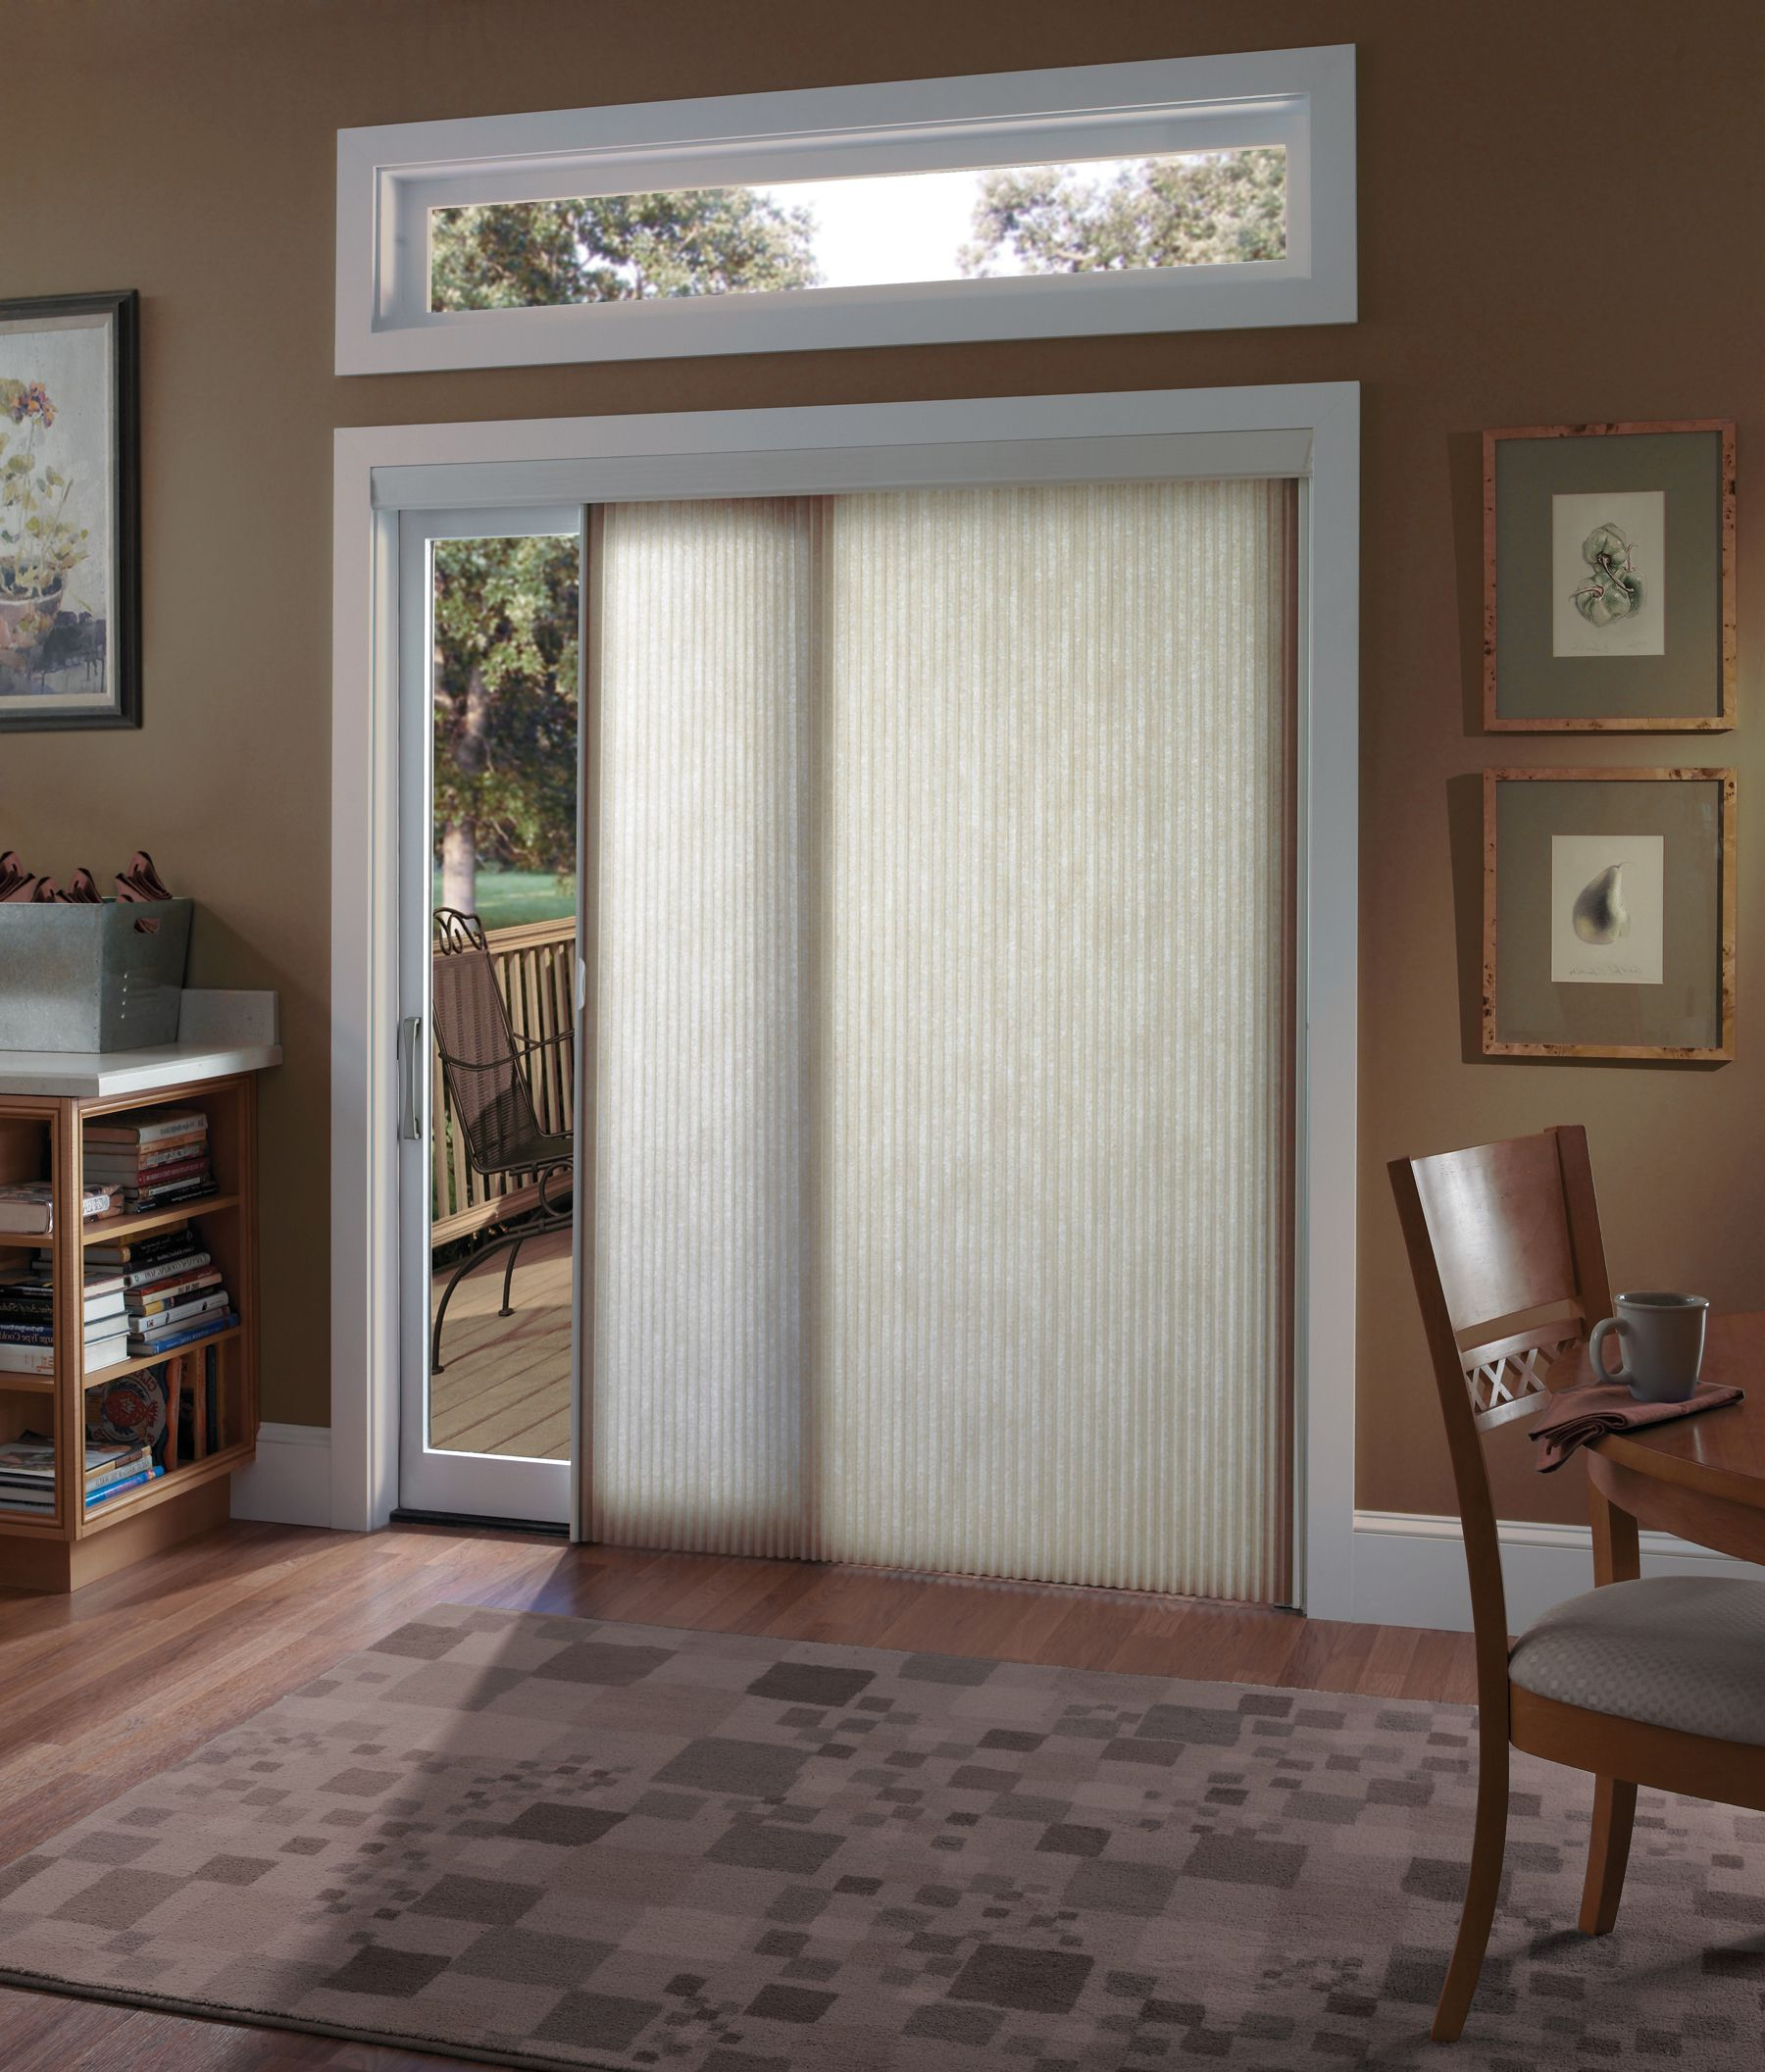 Choosing window treatments for sliding glass - Vertical Cellular Shades A Great Modern Looking Energy Efficient Window Covering Solution For Patio Doors